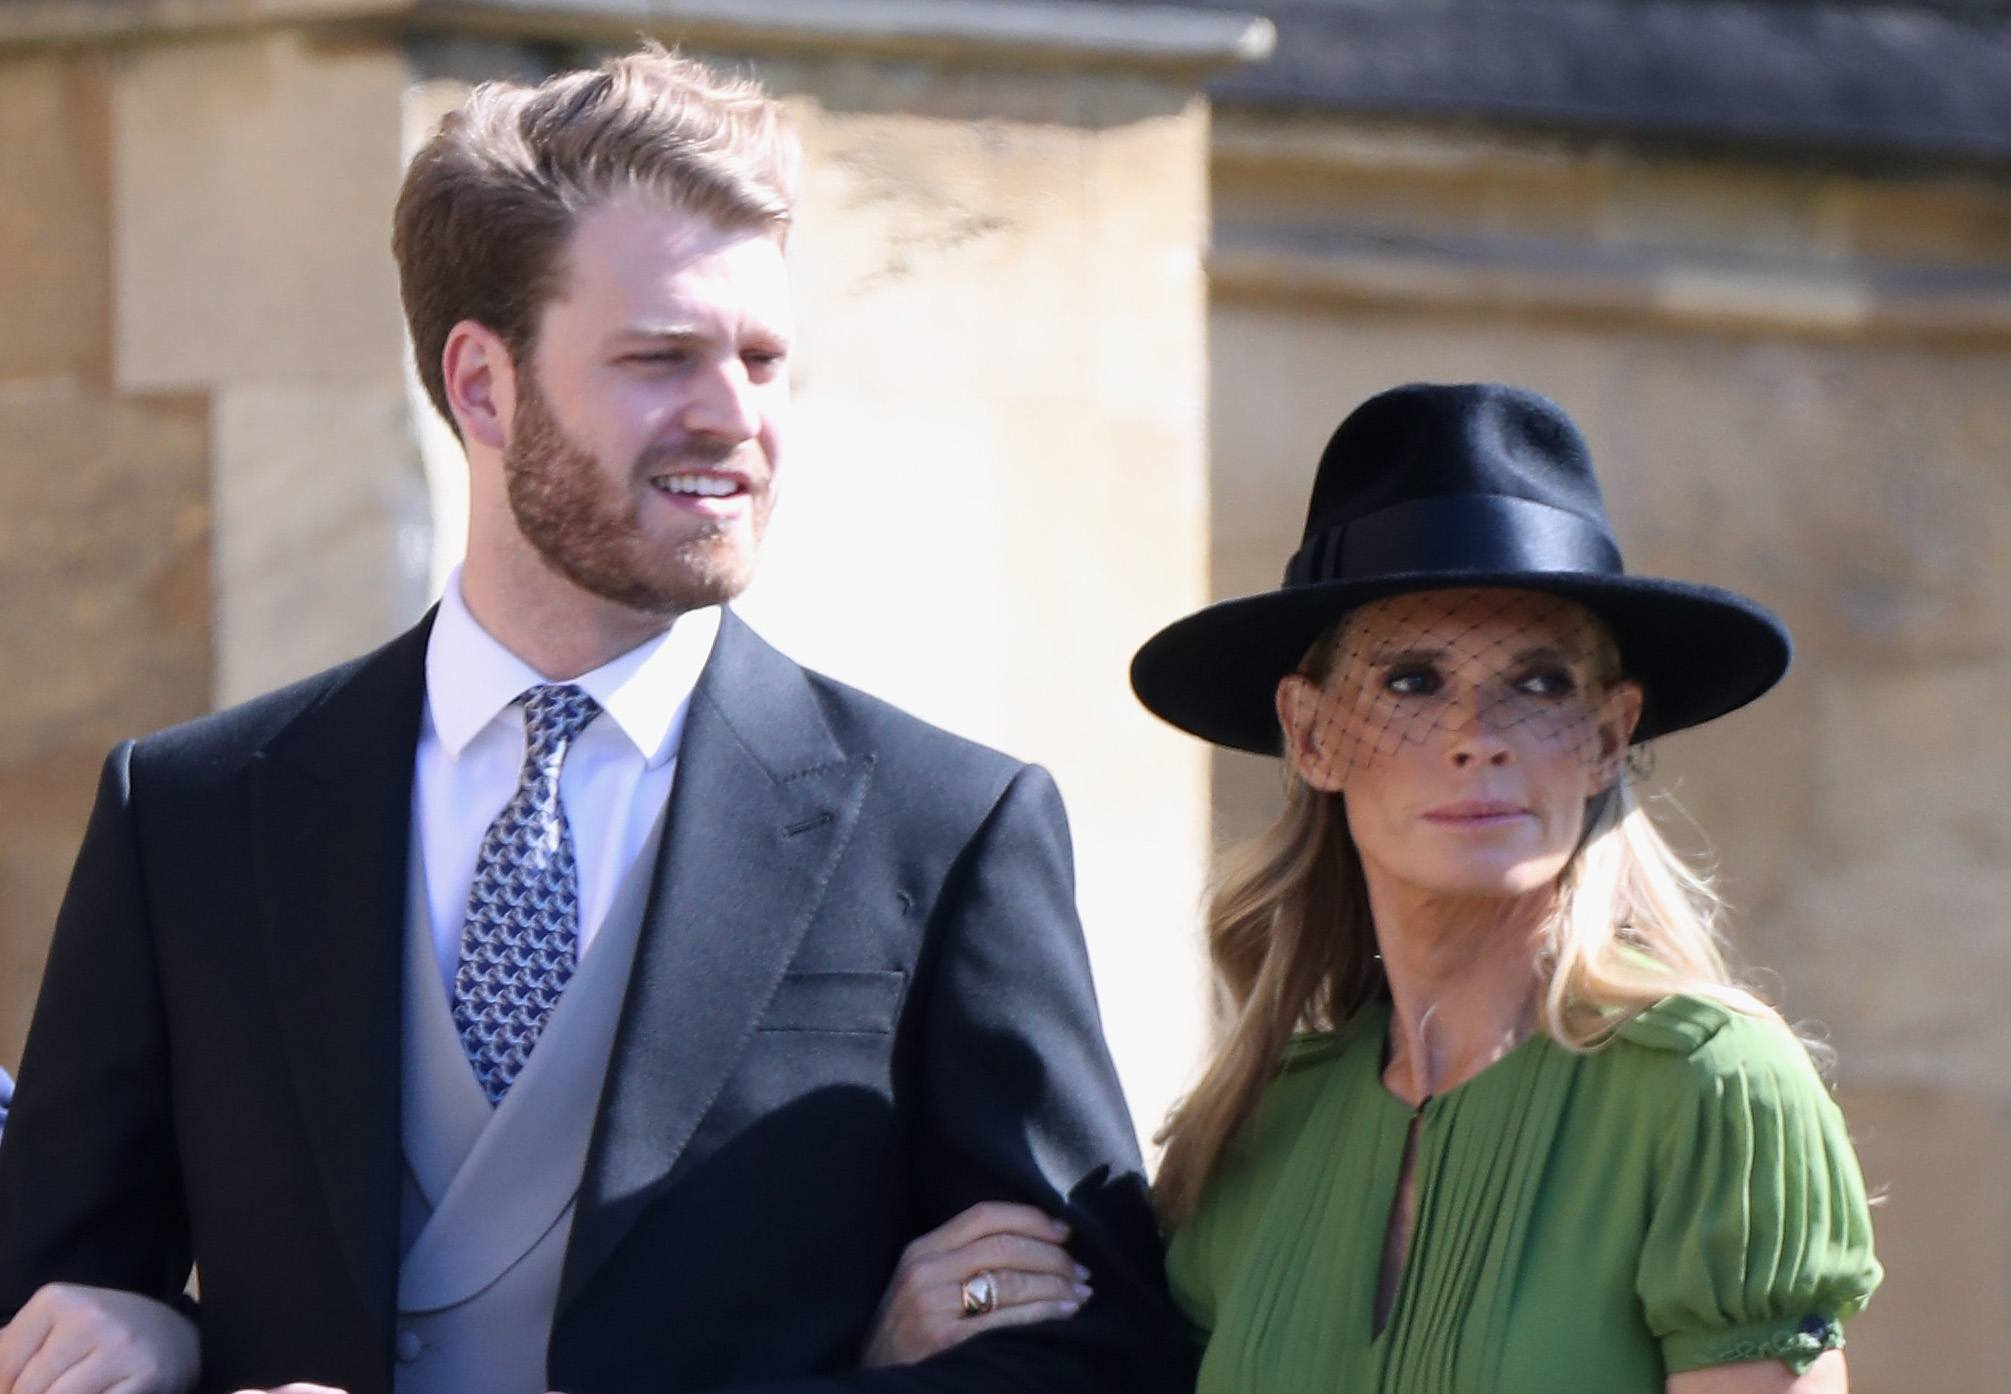 The Craziest Hats and Fascinators Seen at Prince Harry and Meghan Markle s  Royal Wedding c9a19cb58f5